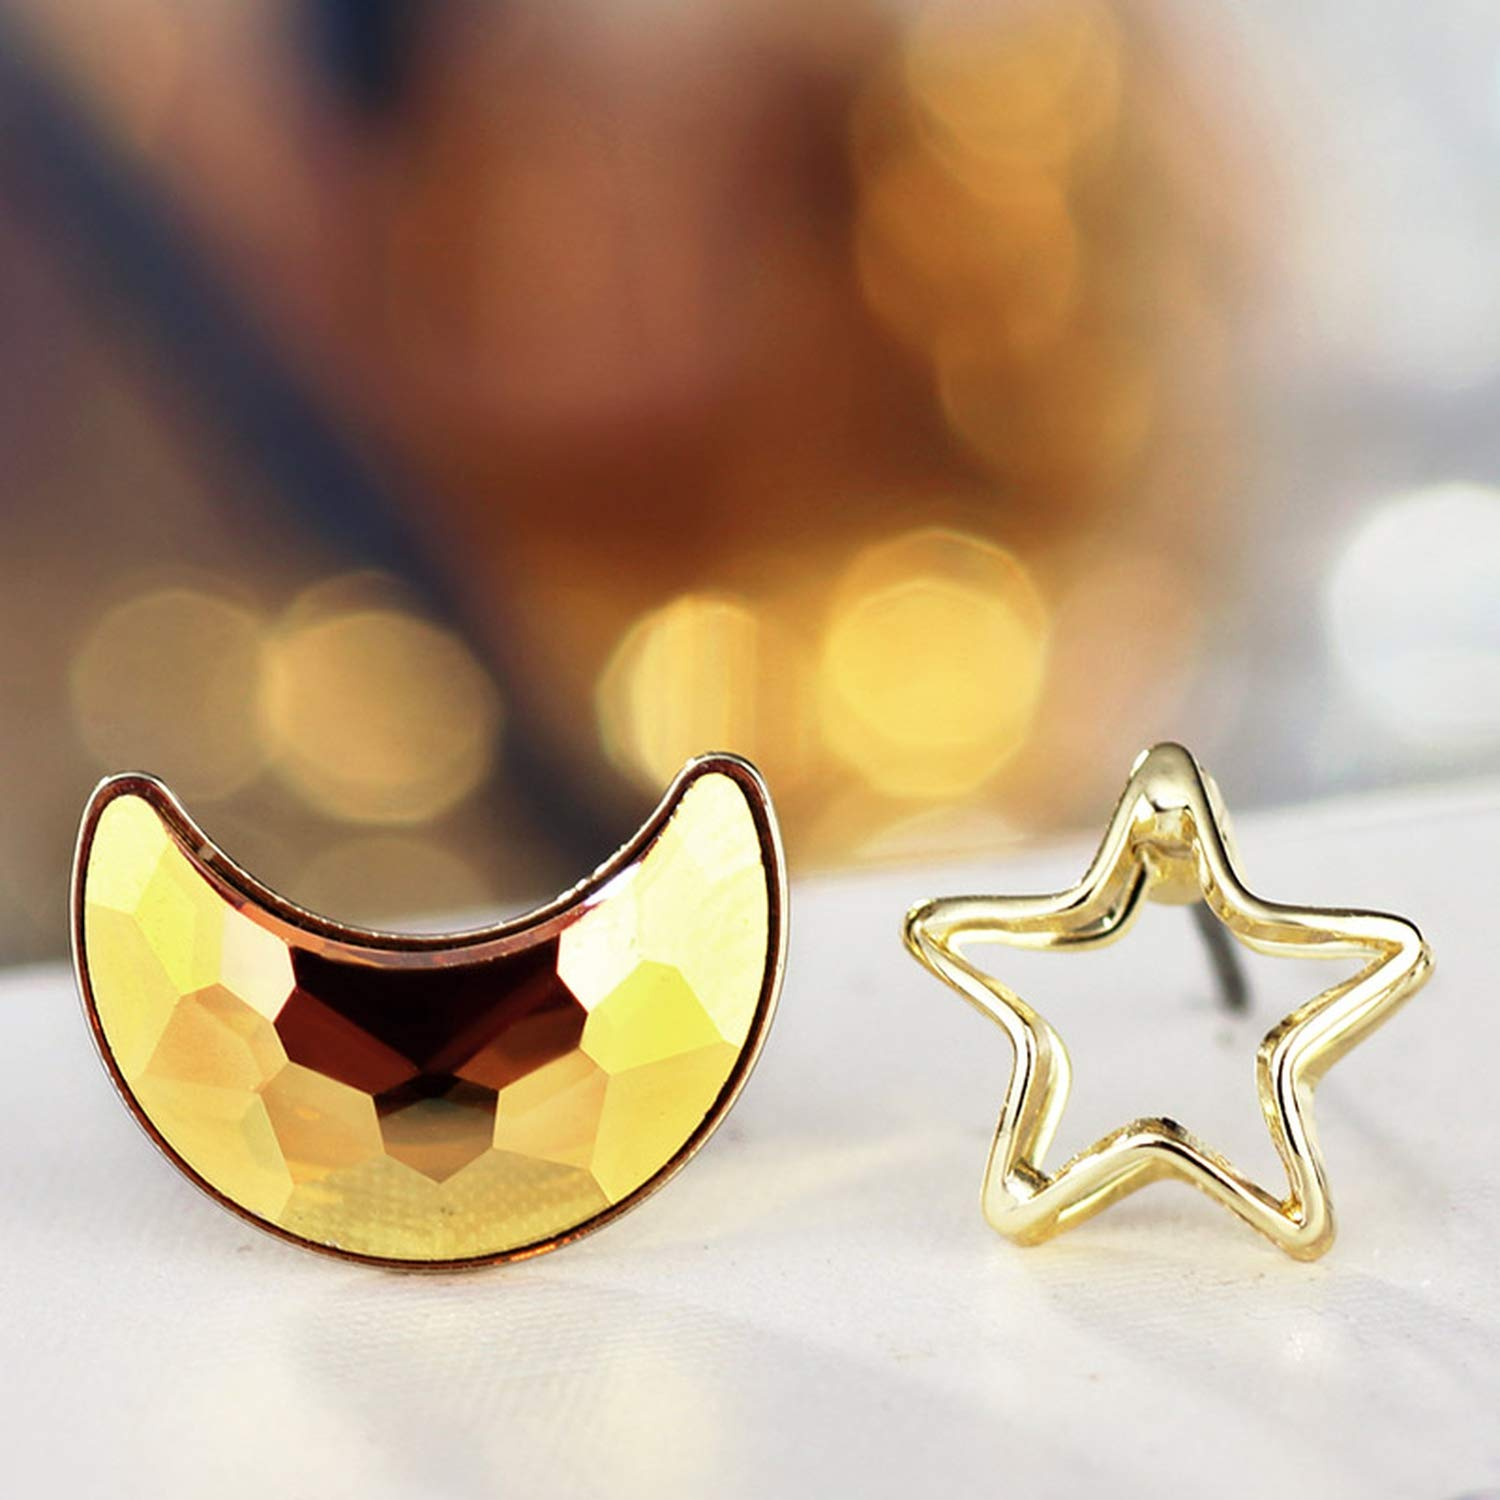 Light Yellow Gold Color Moon Star Rhinestone Stud Earrings Fashion Jewelry 2019 New Birthday Gifts